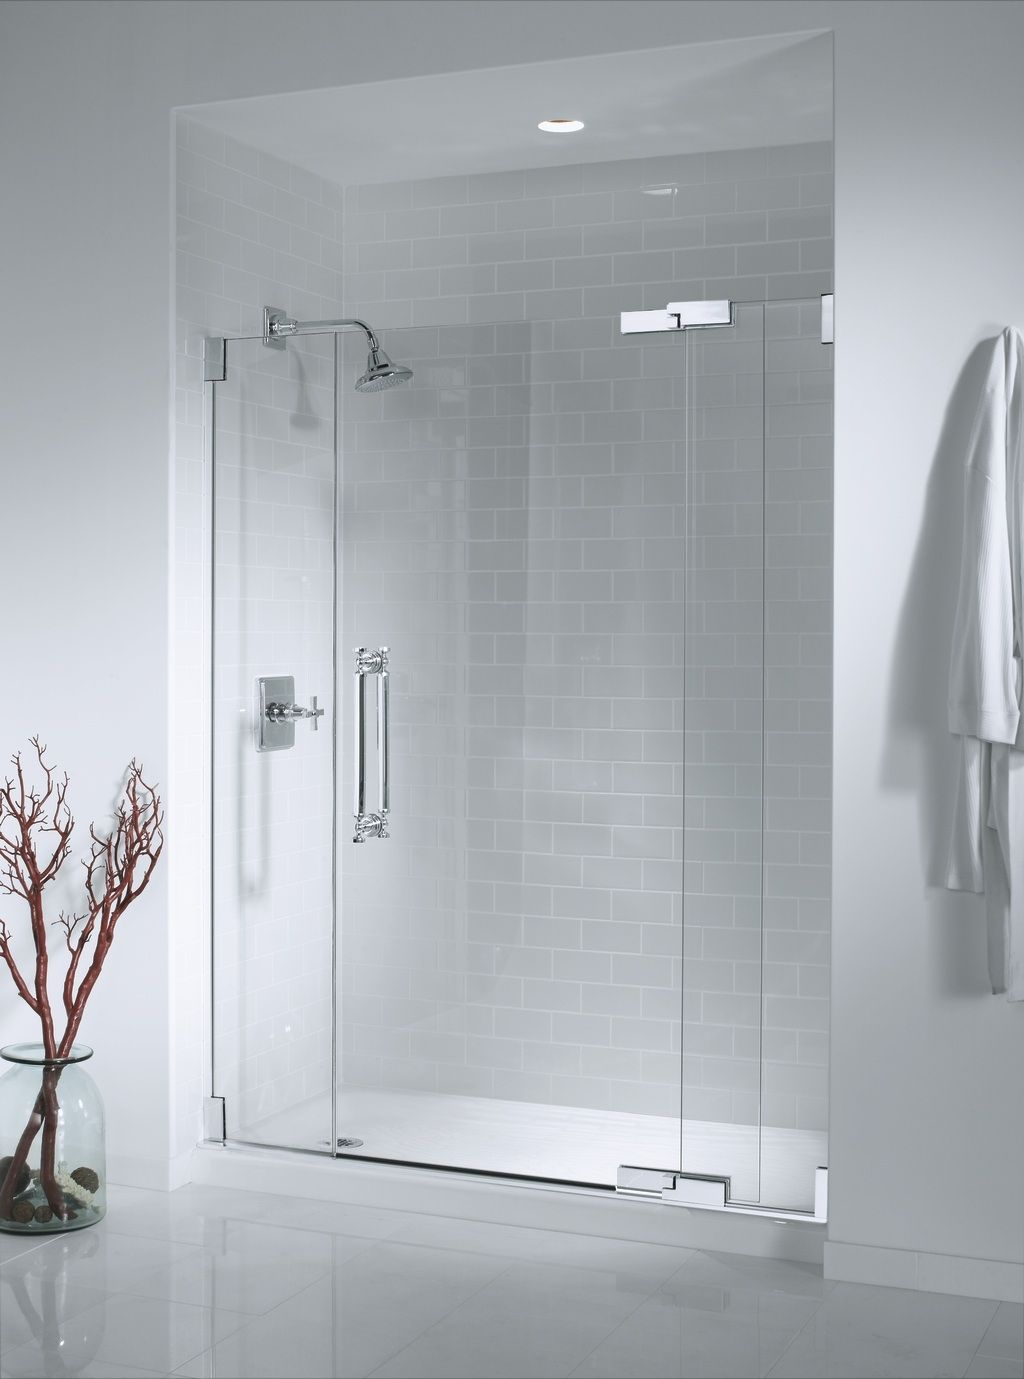 Glass showers our shower doors do more than simply open and close we design frameless